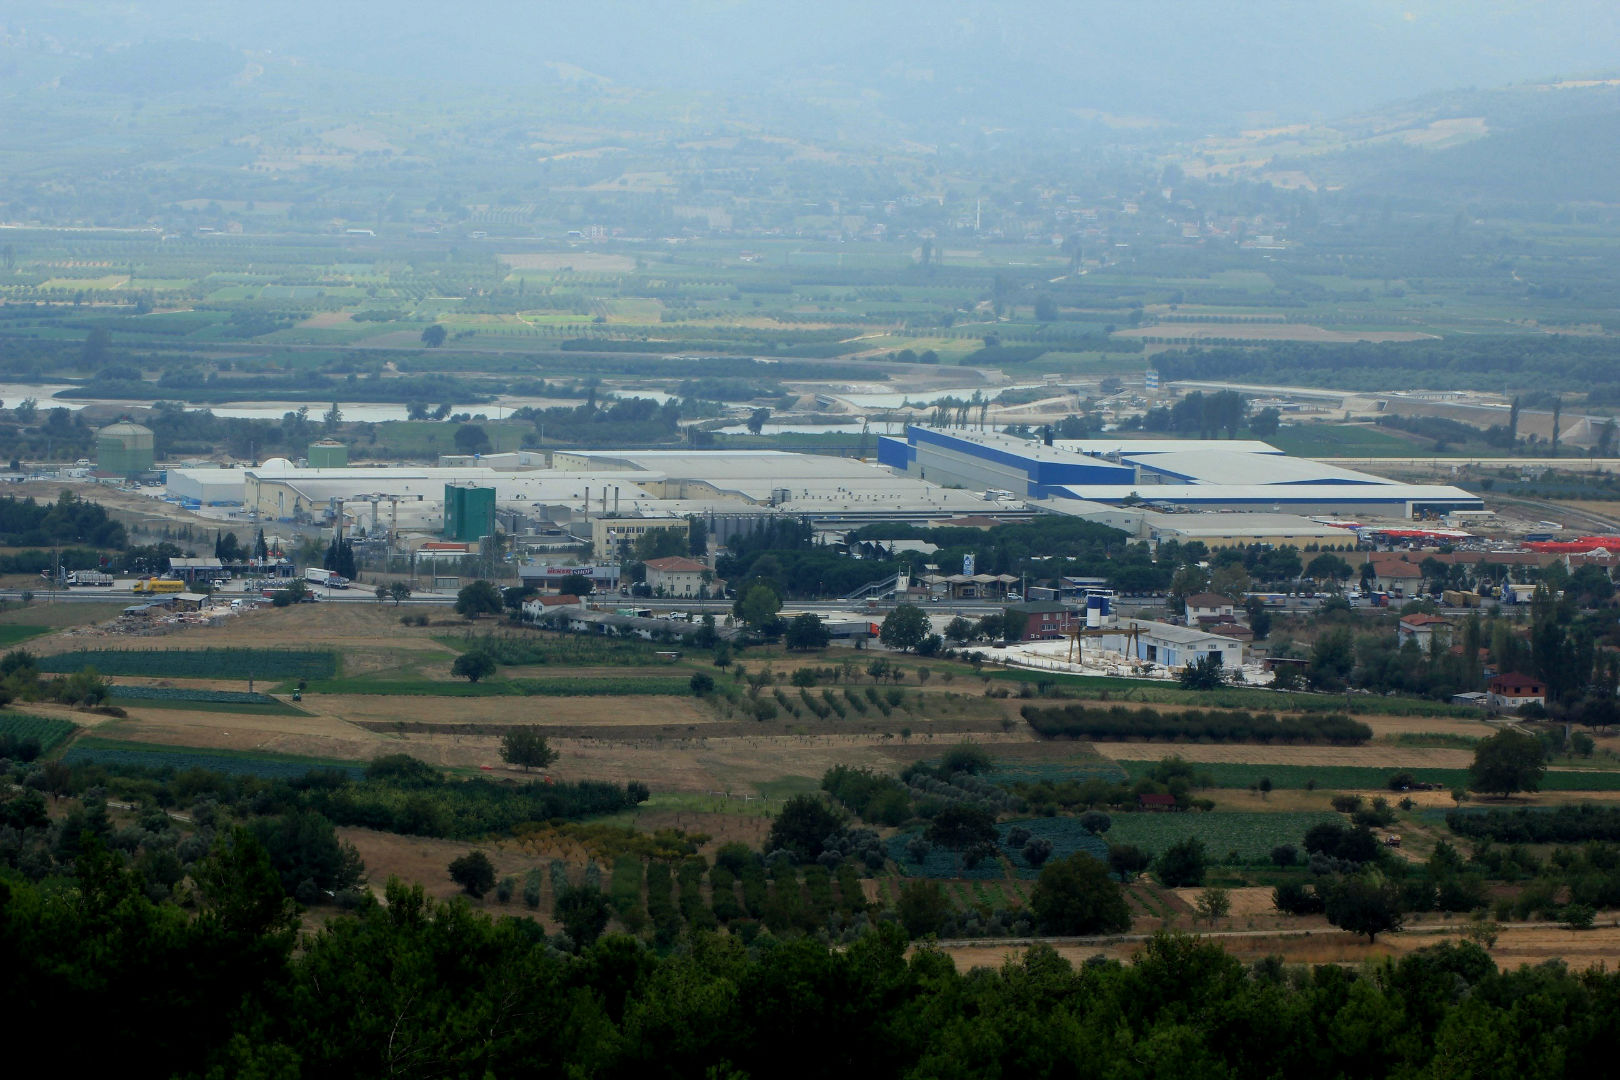 Production started at Ak Gıda, Sakarya (Pamukova) Facility with 1500 tons milk processing capacity per day.